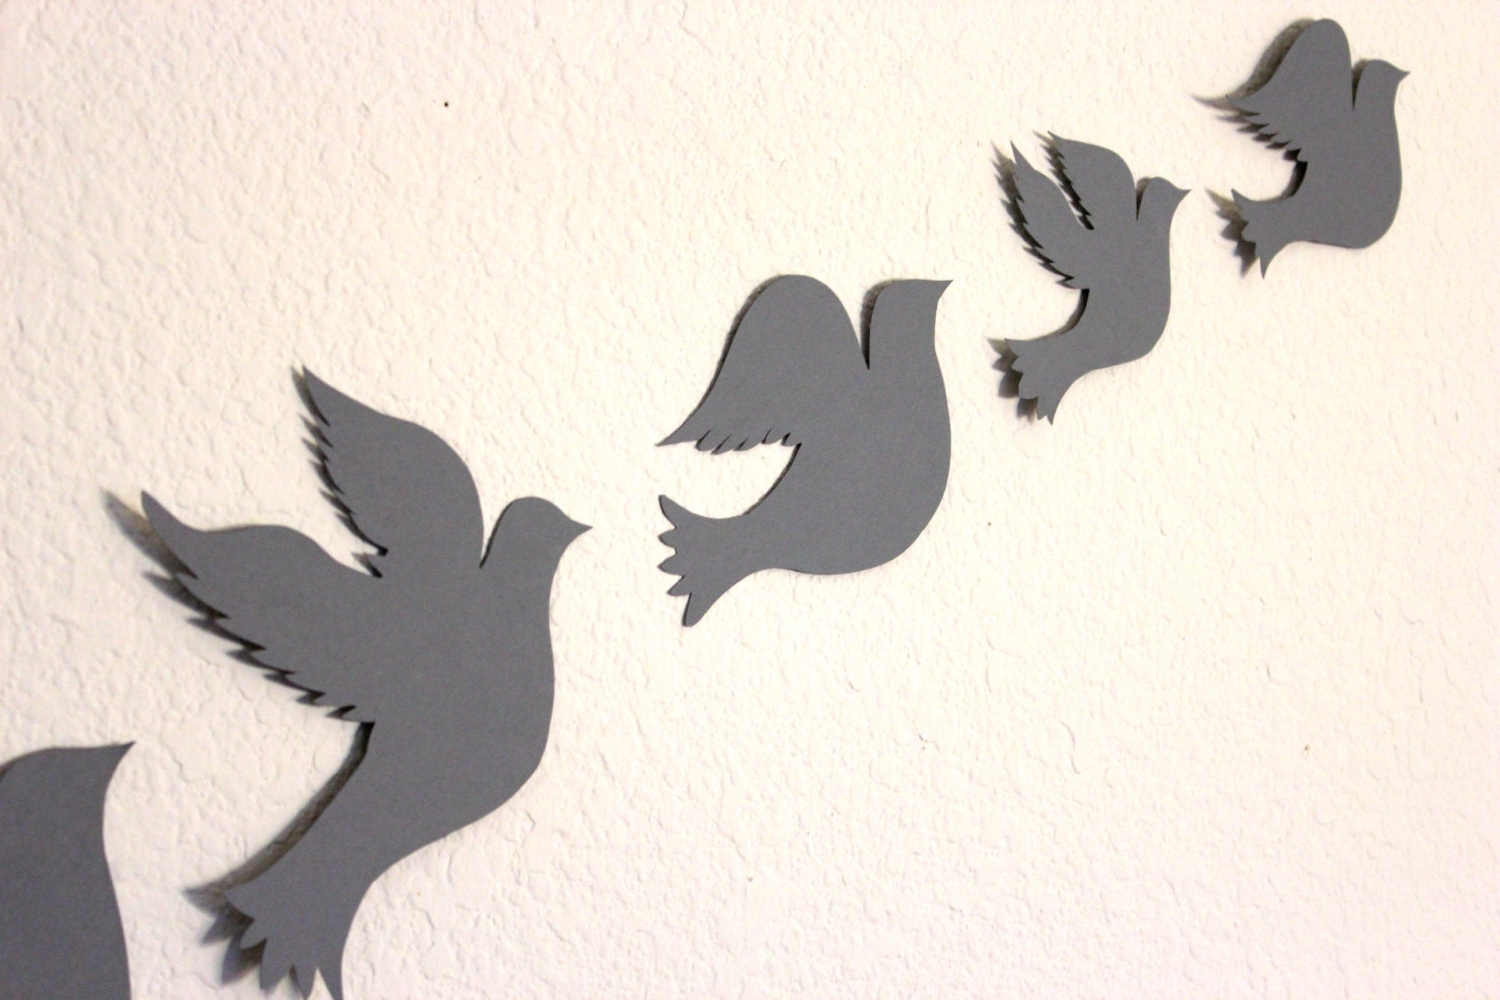 Bird Wall Art Regarding Well Known 40 Bird Wall Art, Tree With Birds And Birdcage Wall Decalwall (View 15 of 15)